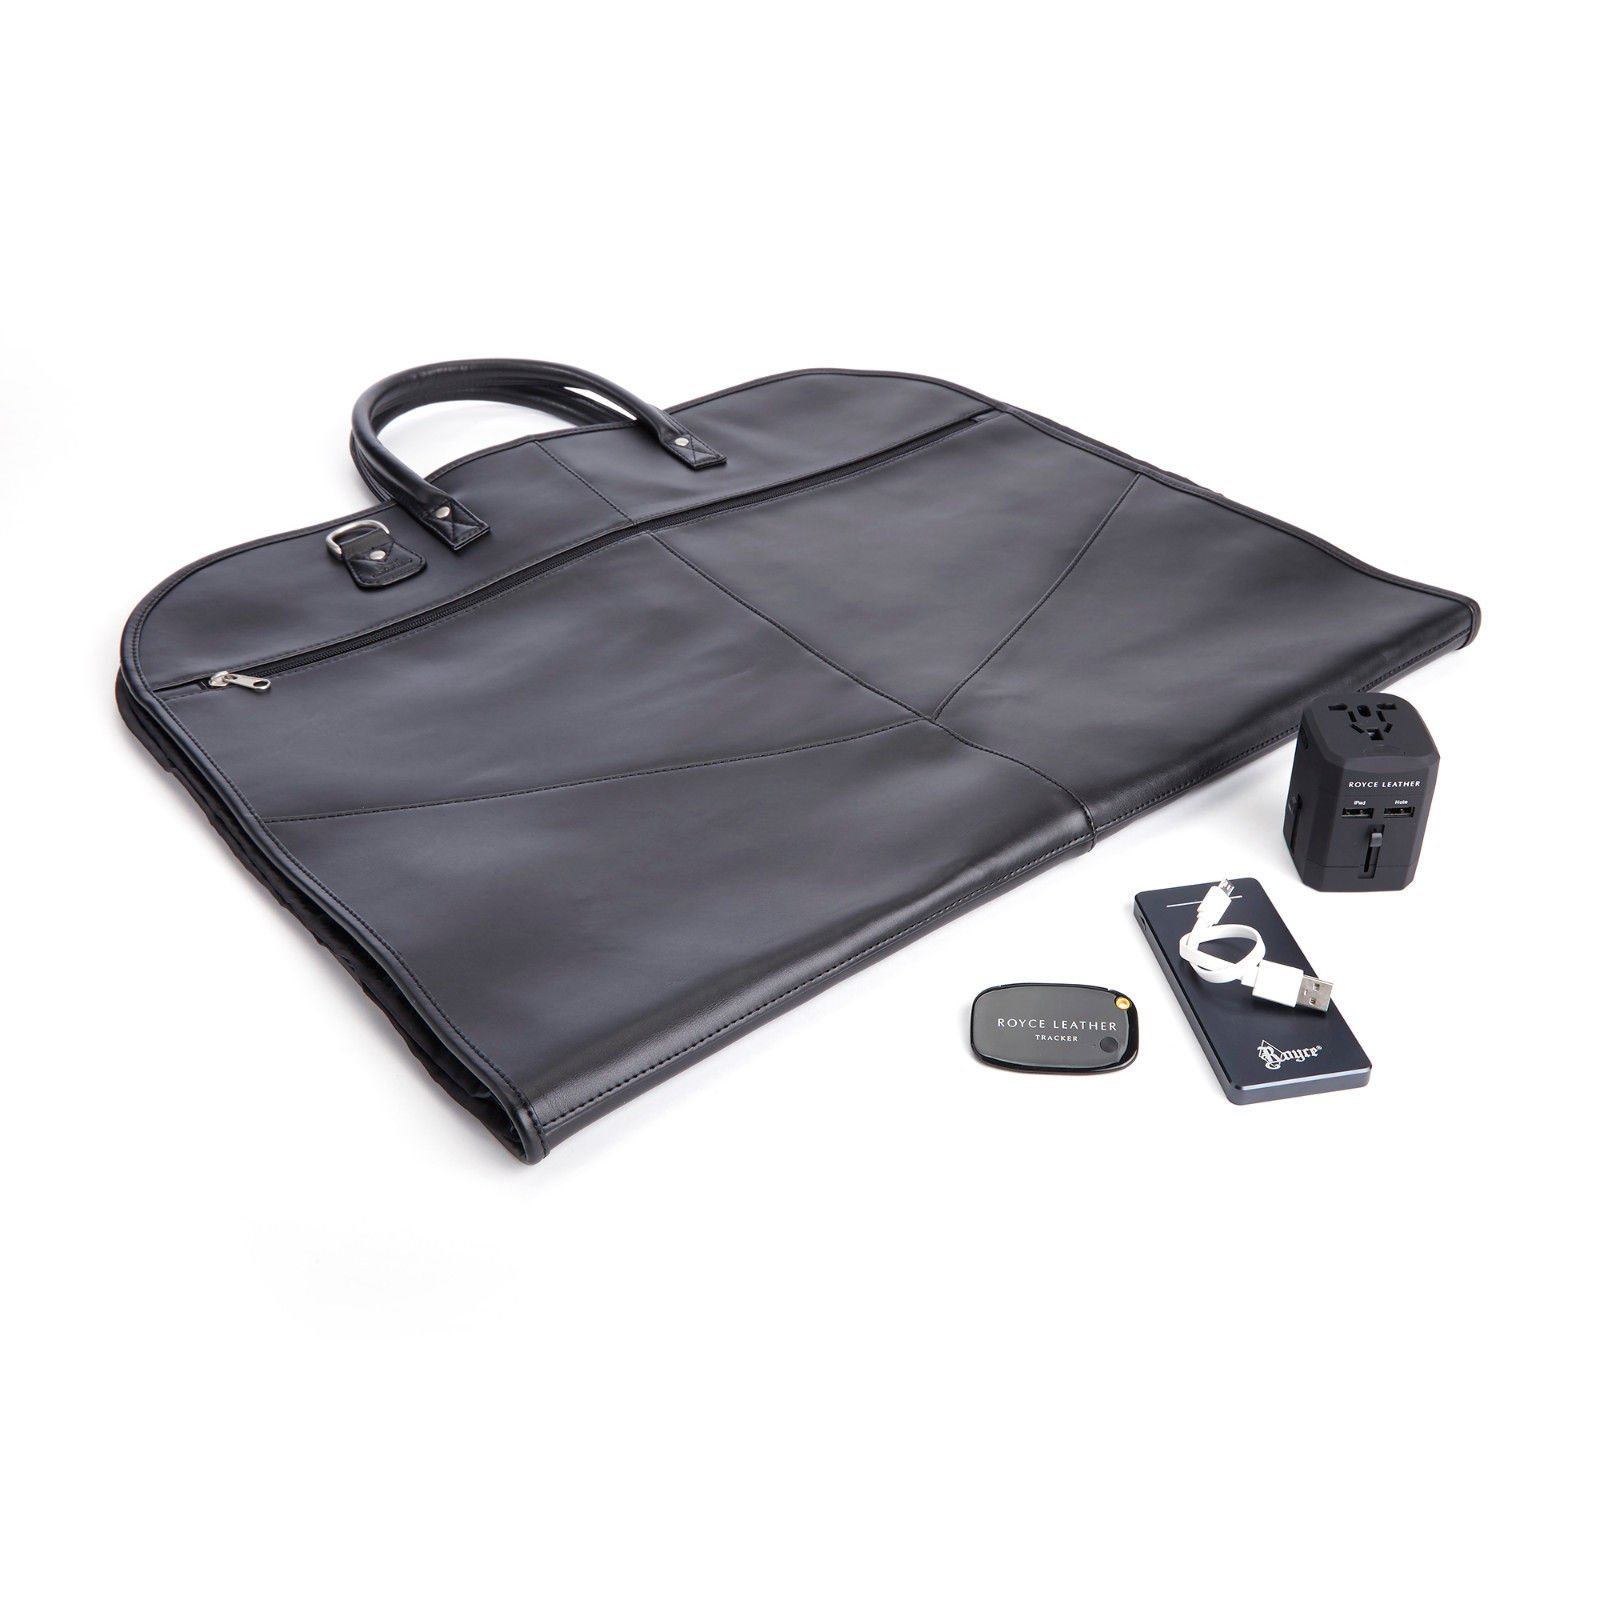 ROYCE Luxury Travel Set: Garment Bag with Bluetooth-based Tracking Device for Locating Luggage, Portable Power Bank and International Adapter - Black